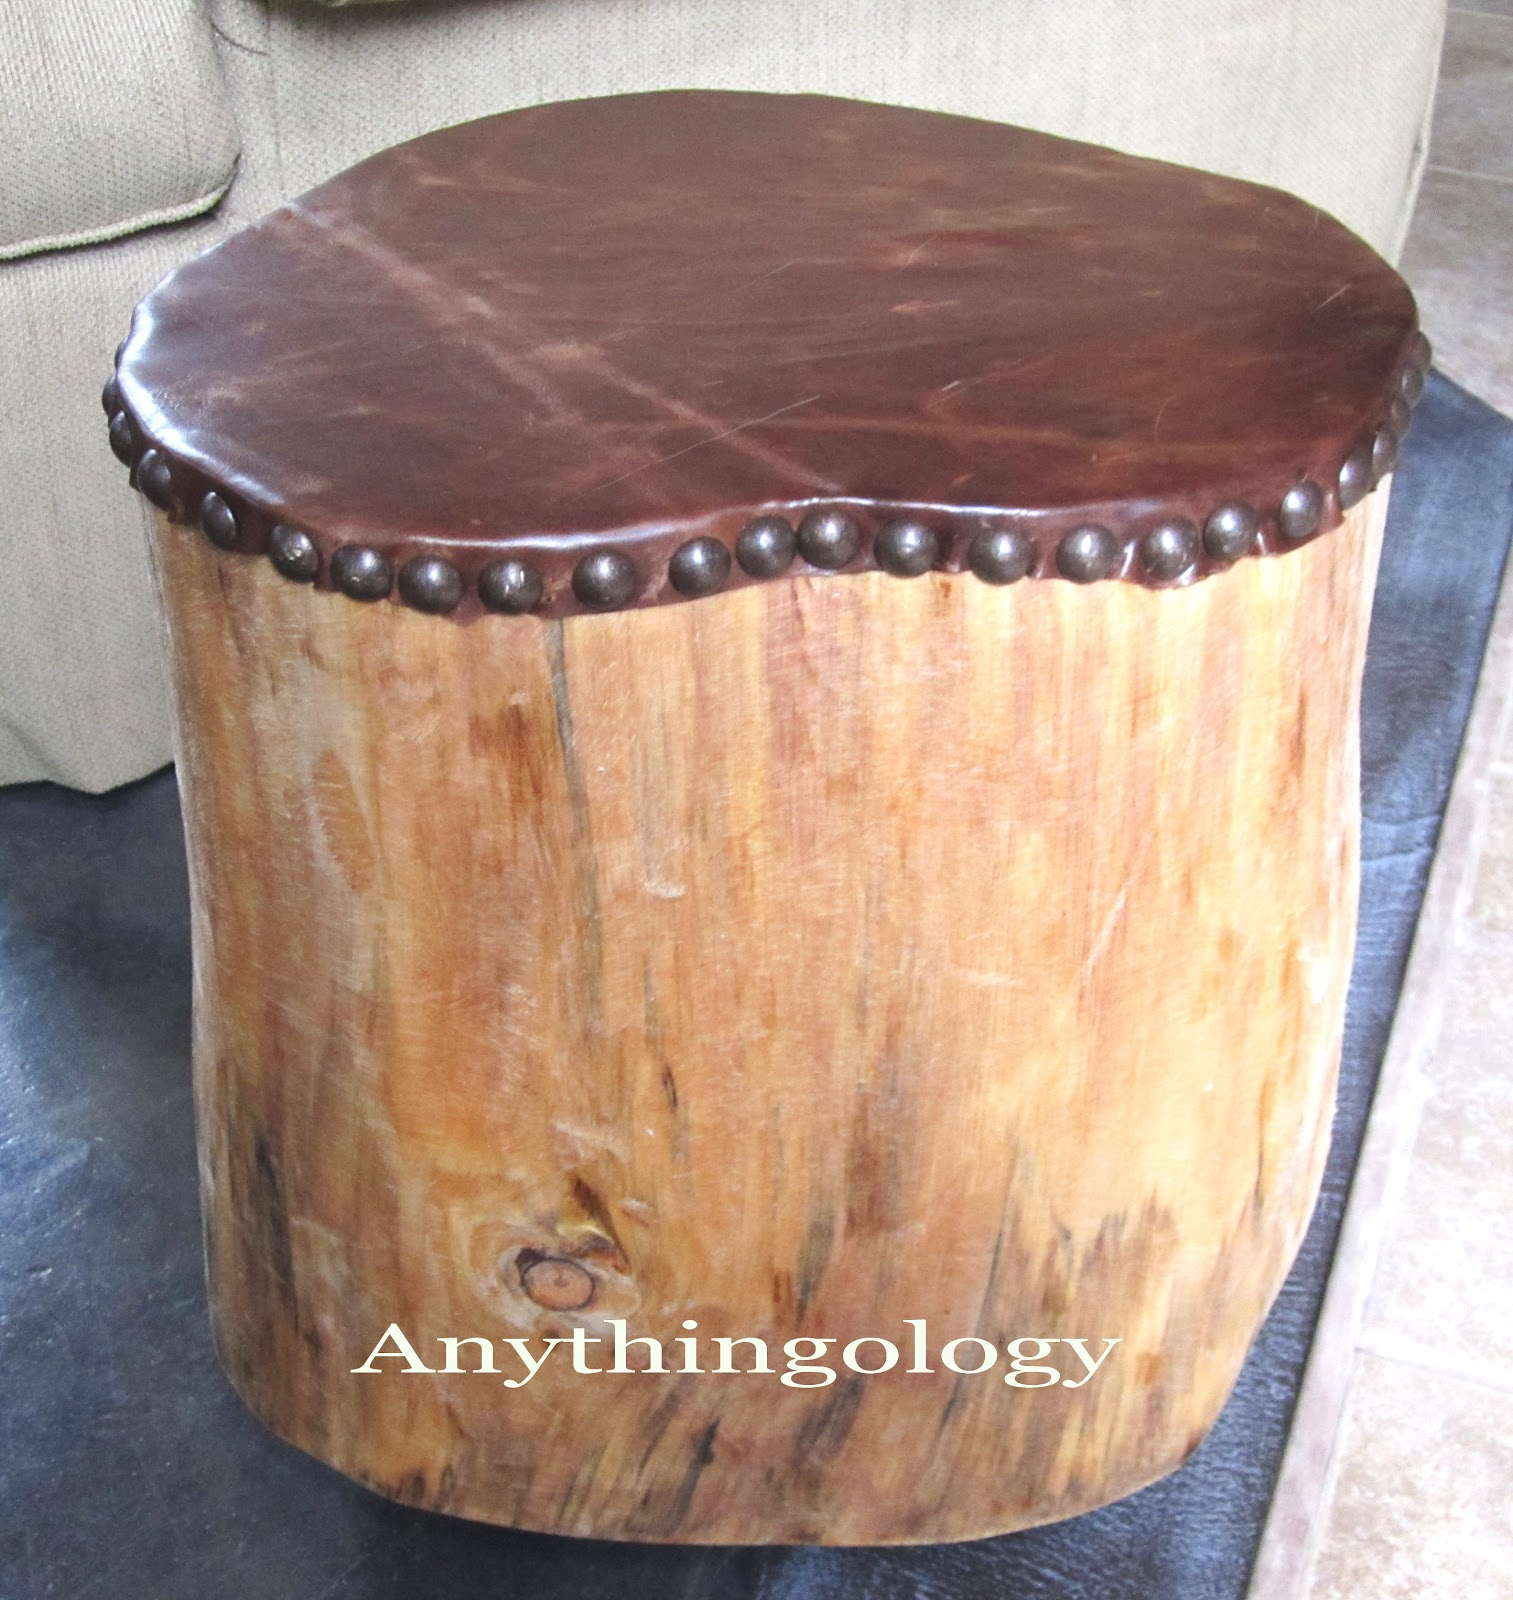 Tree Stump Coffee Table Diy: Anythingology: My Leather Studded Stump